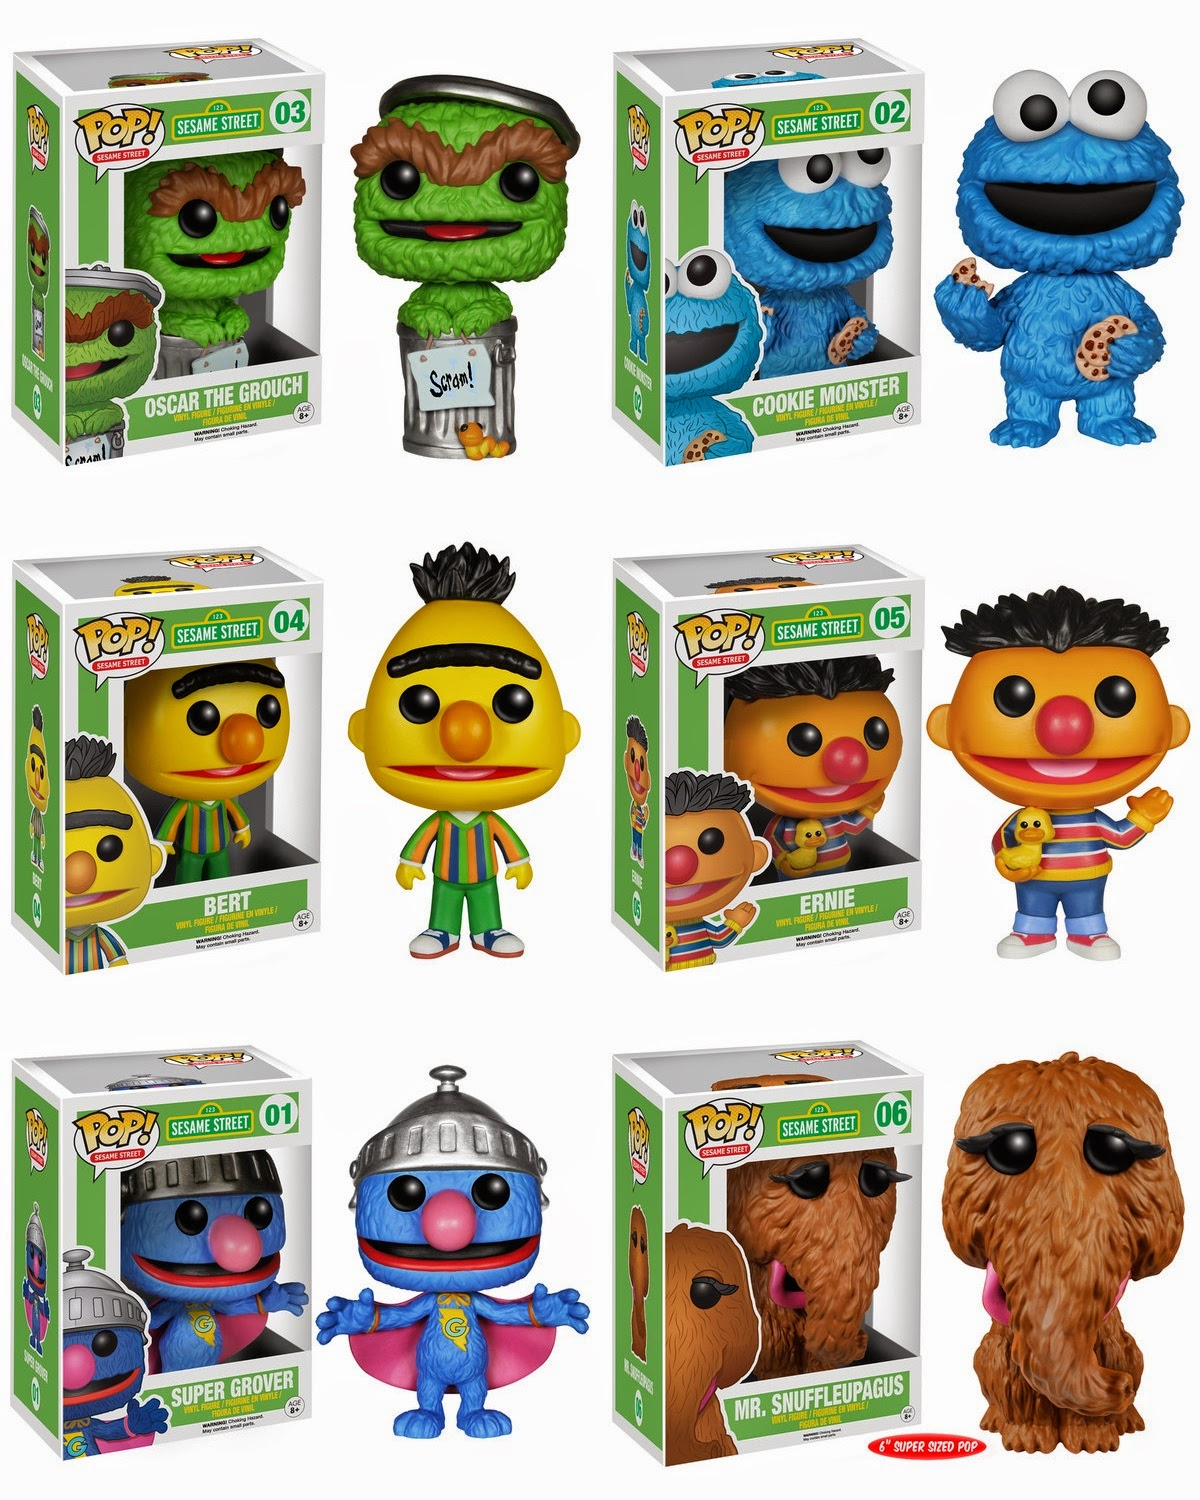 Sesame Street Pop! Series 1 Vinyl Figures by Funko - Oscar the Grouch, Cookie Monster, Bert, Ernie, Super Grover & Mr. Snuffleupagus